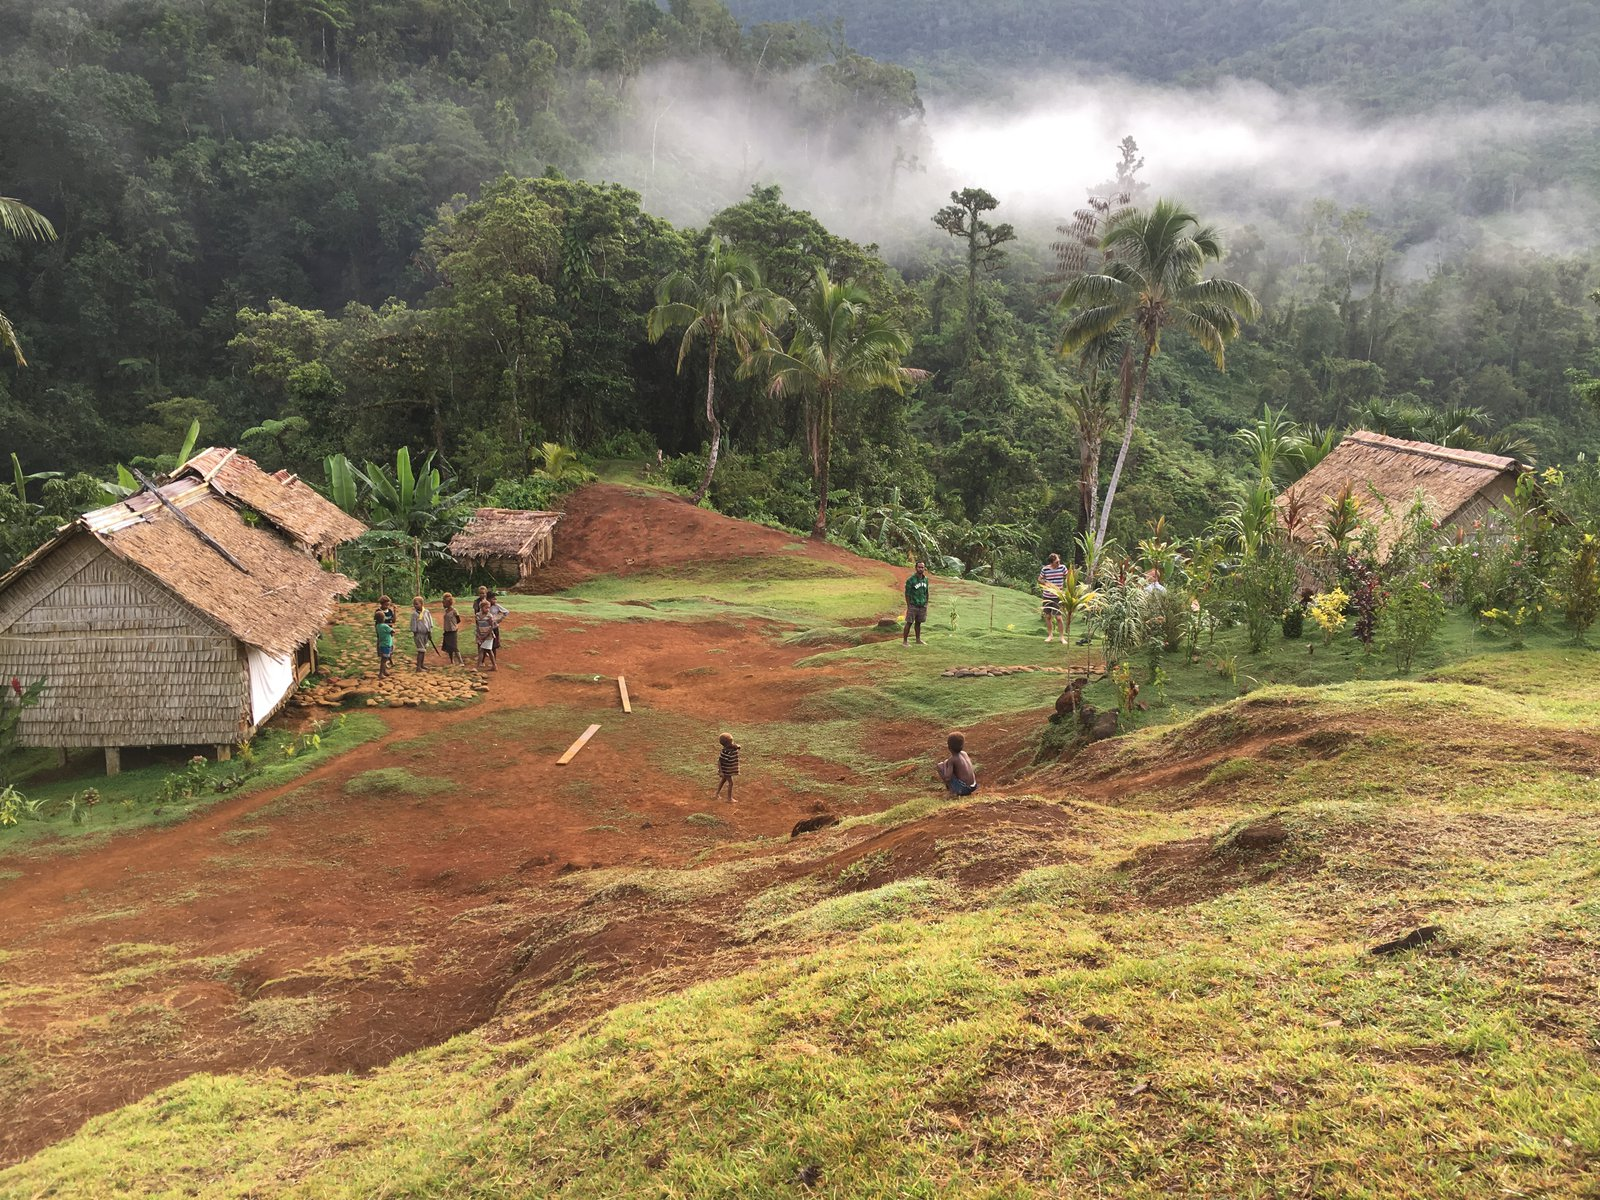 Dwellings in Malaita.